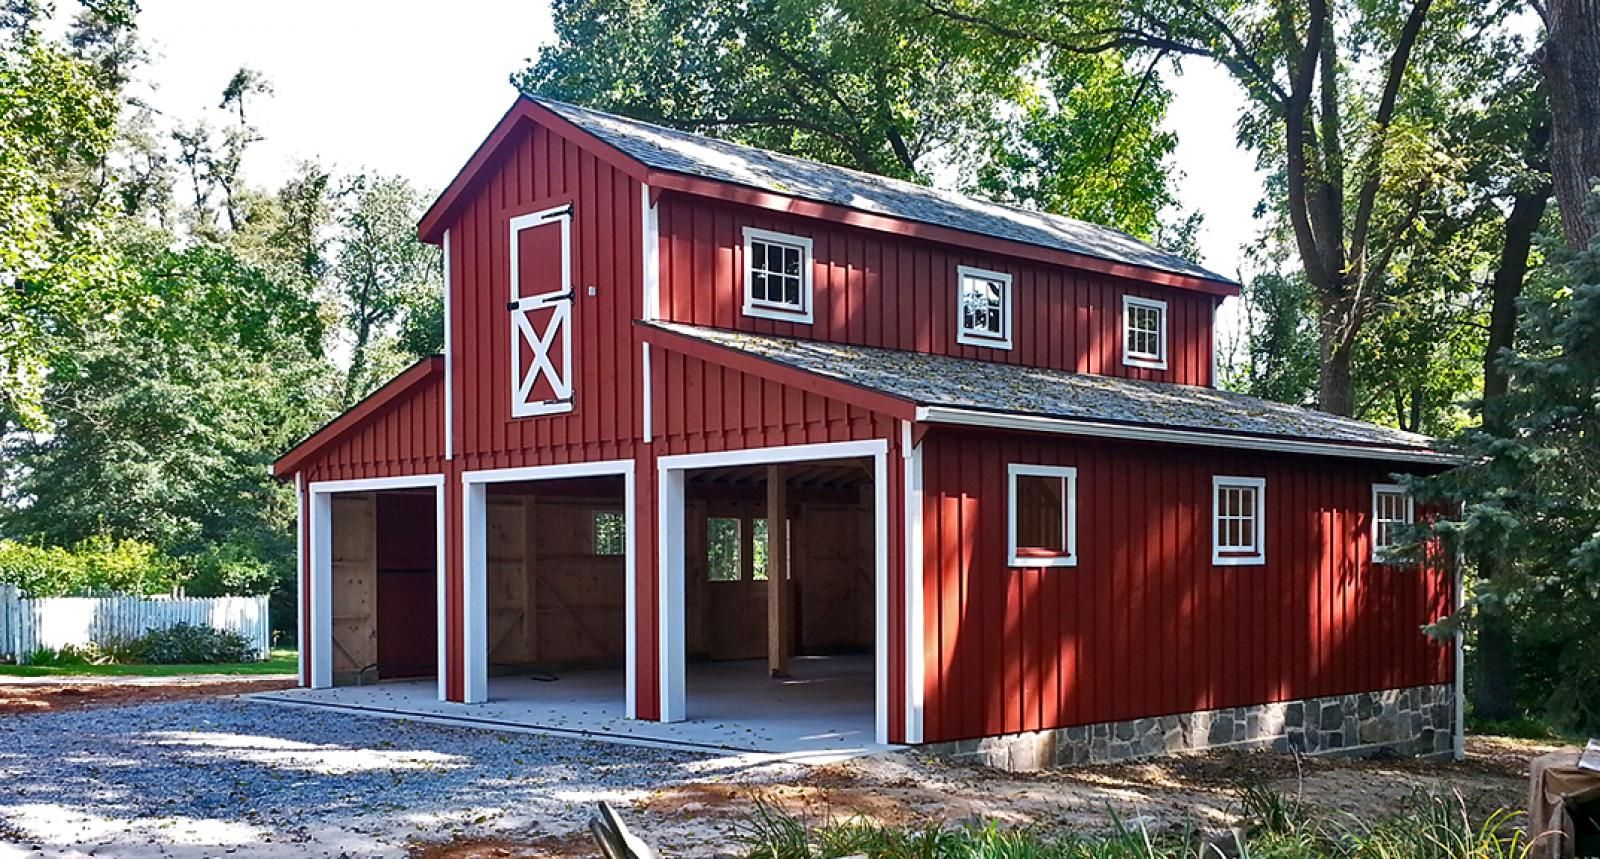 Related image garages pinterest barn apartments and for Barn kits with apartments